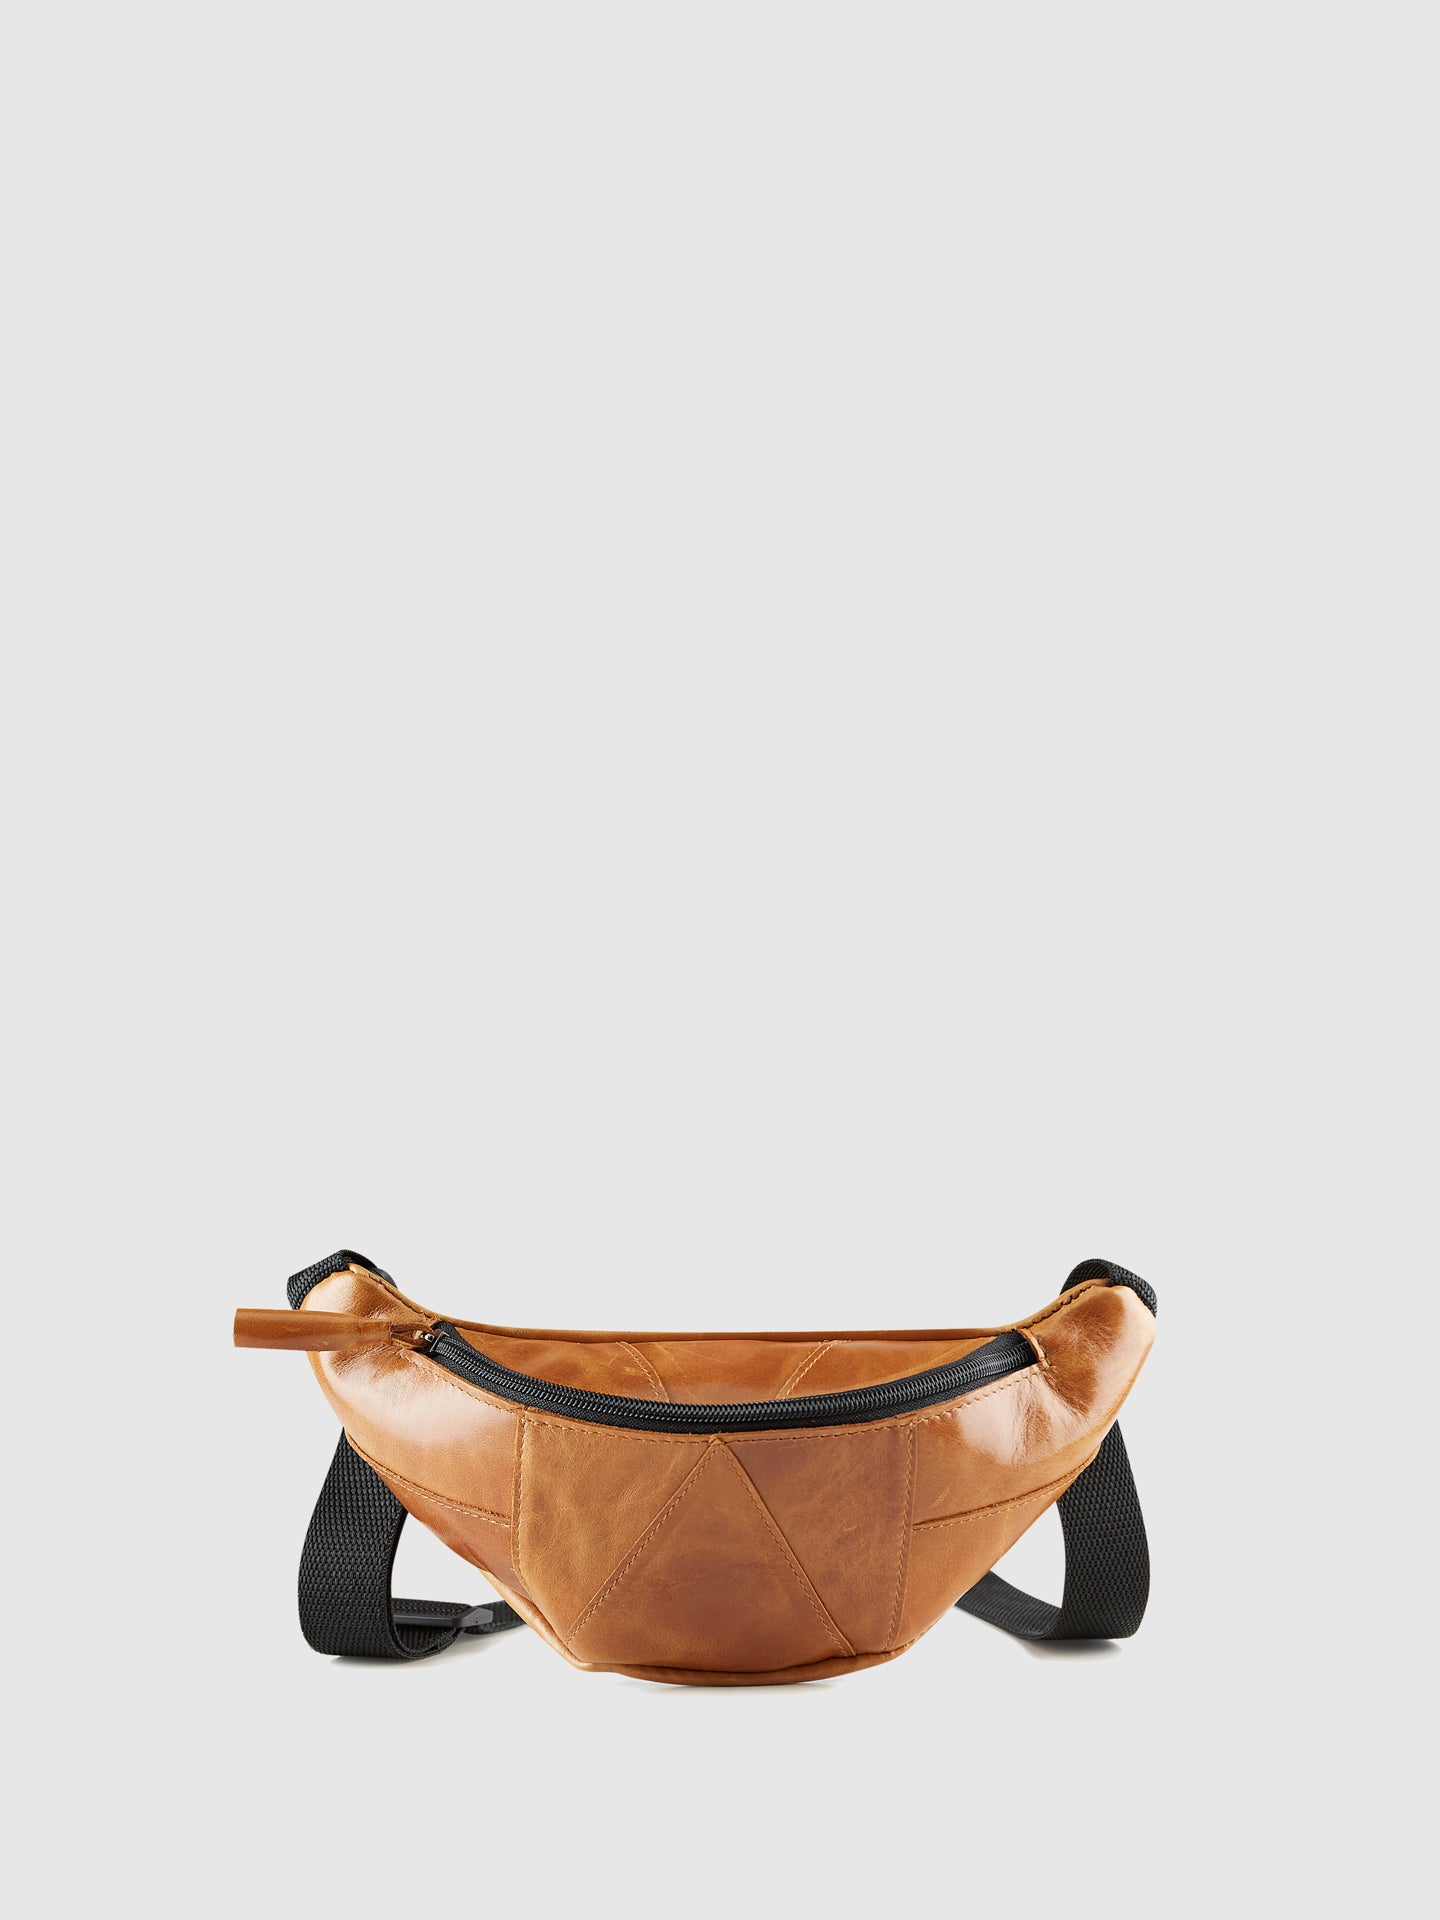 Maria Maleta Brown Leather Bumbag